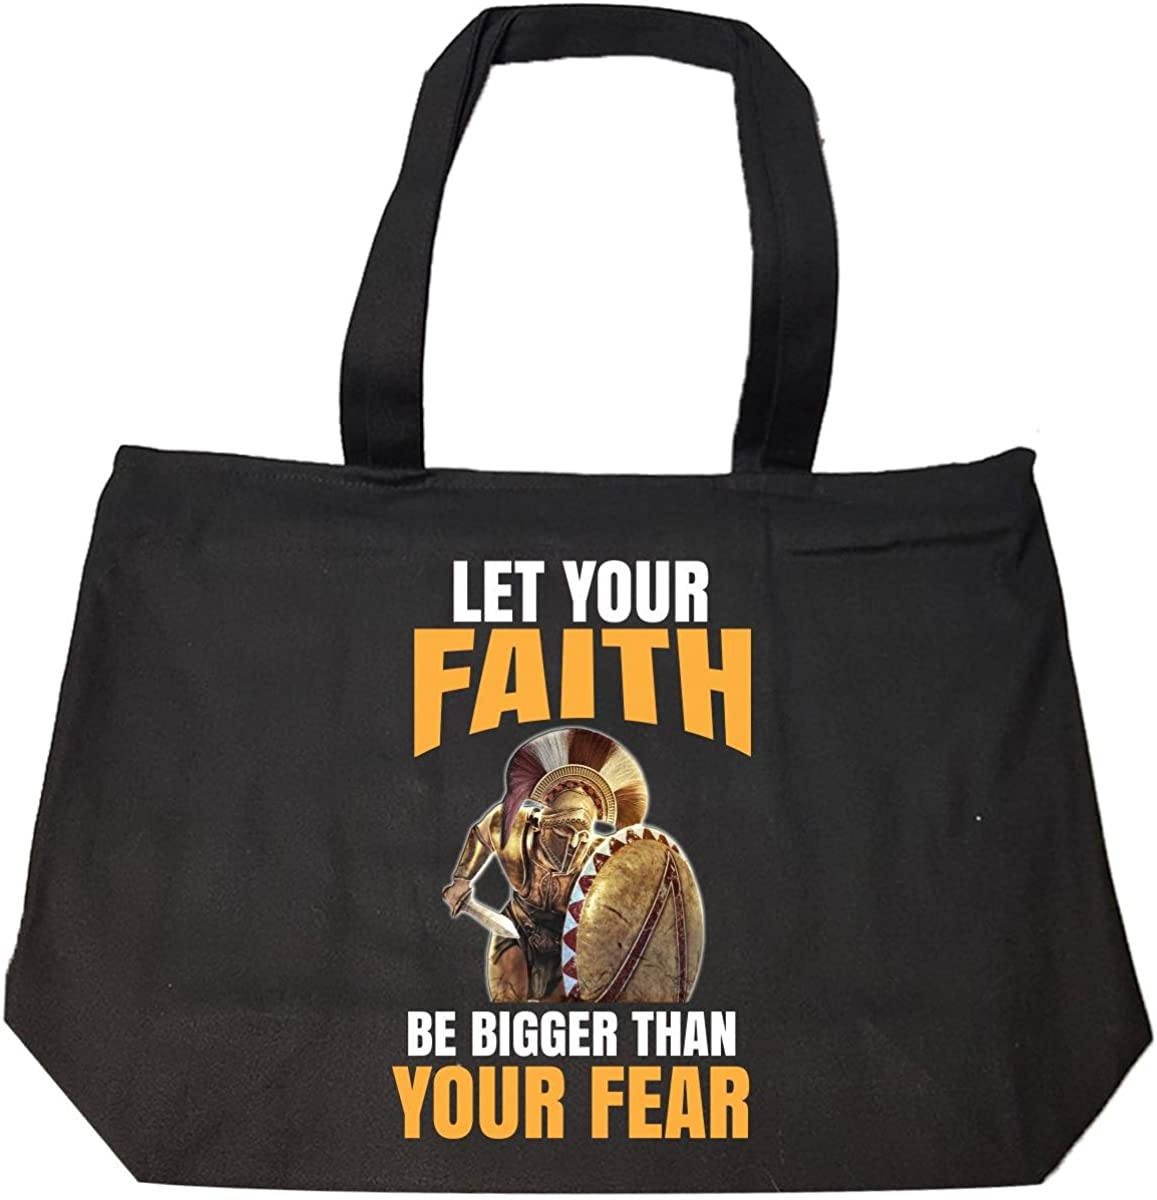 Let Your Faith Be Bigger Than Your Fear Tote Bag With Zip